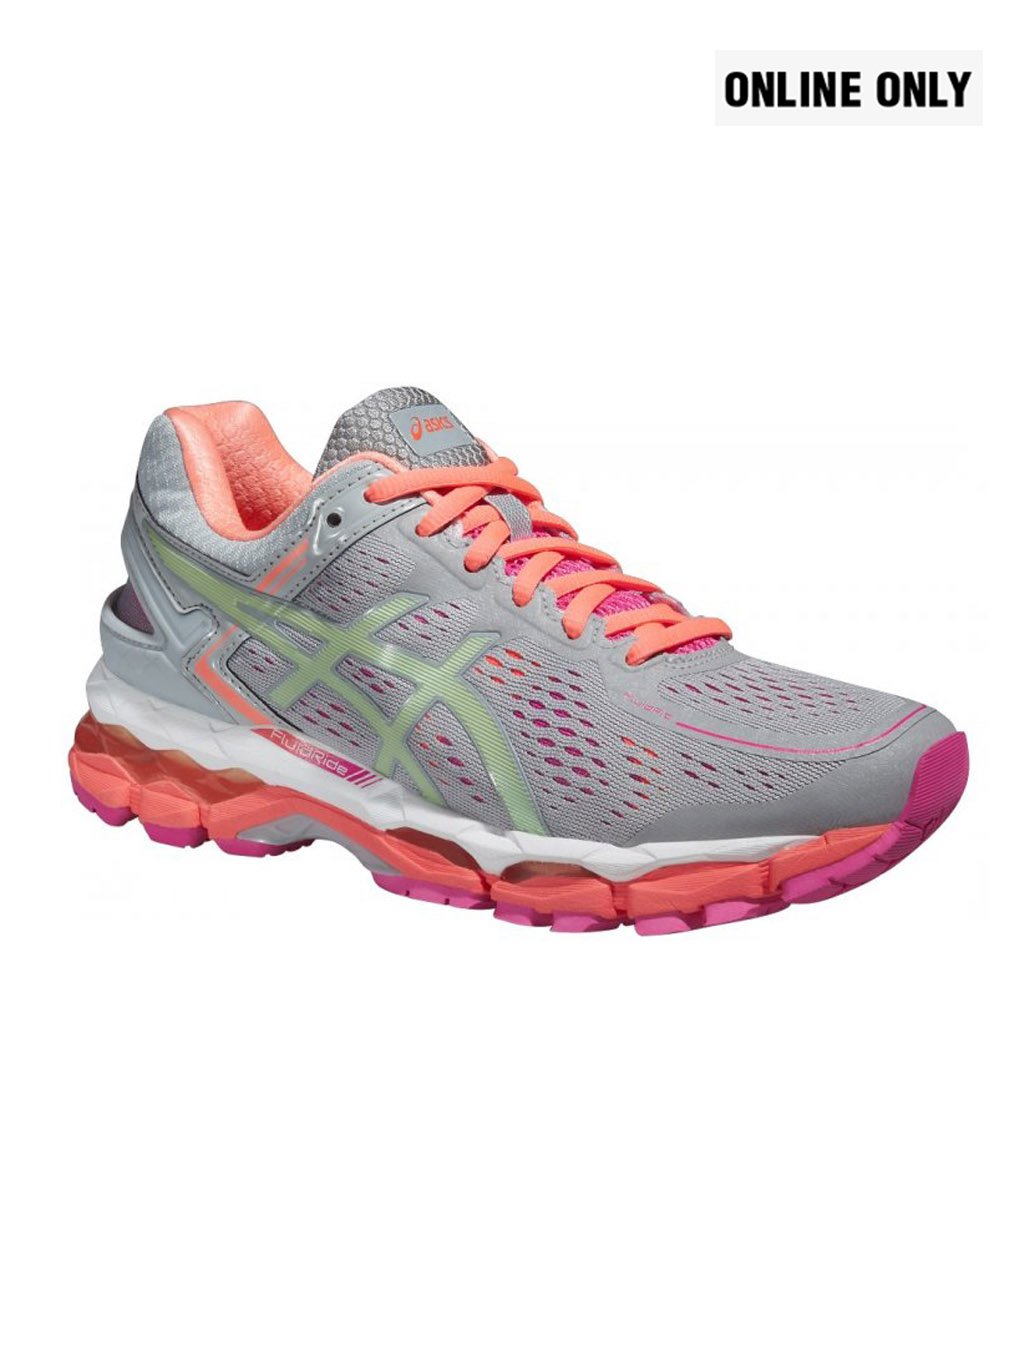 ASICS GEL-KAYANO 22.